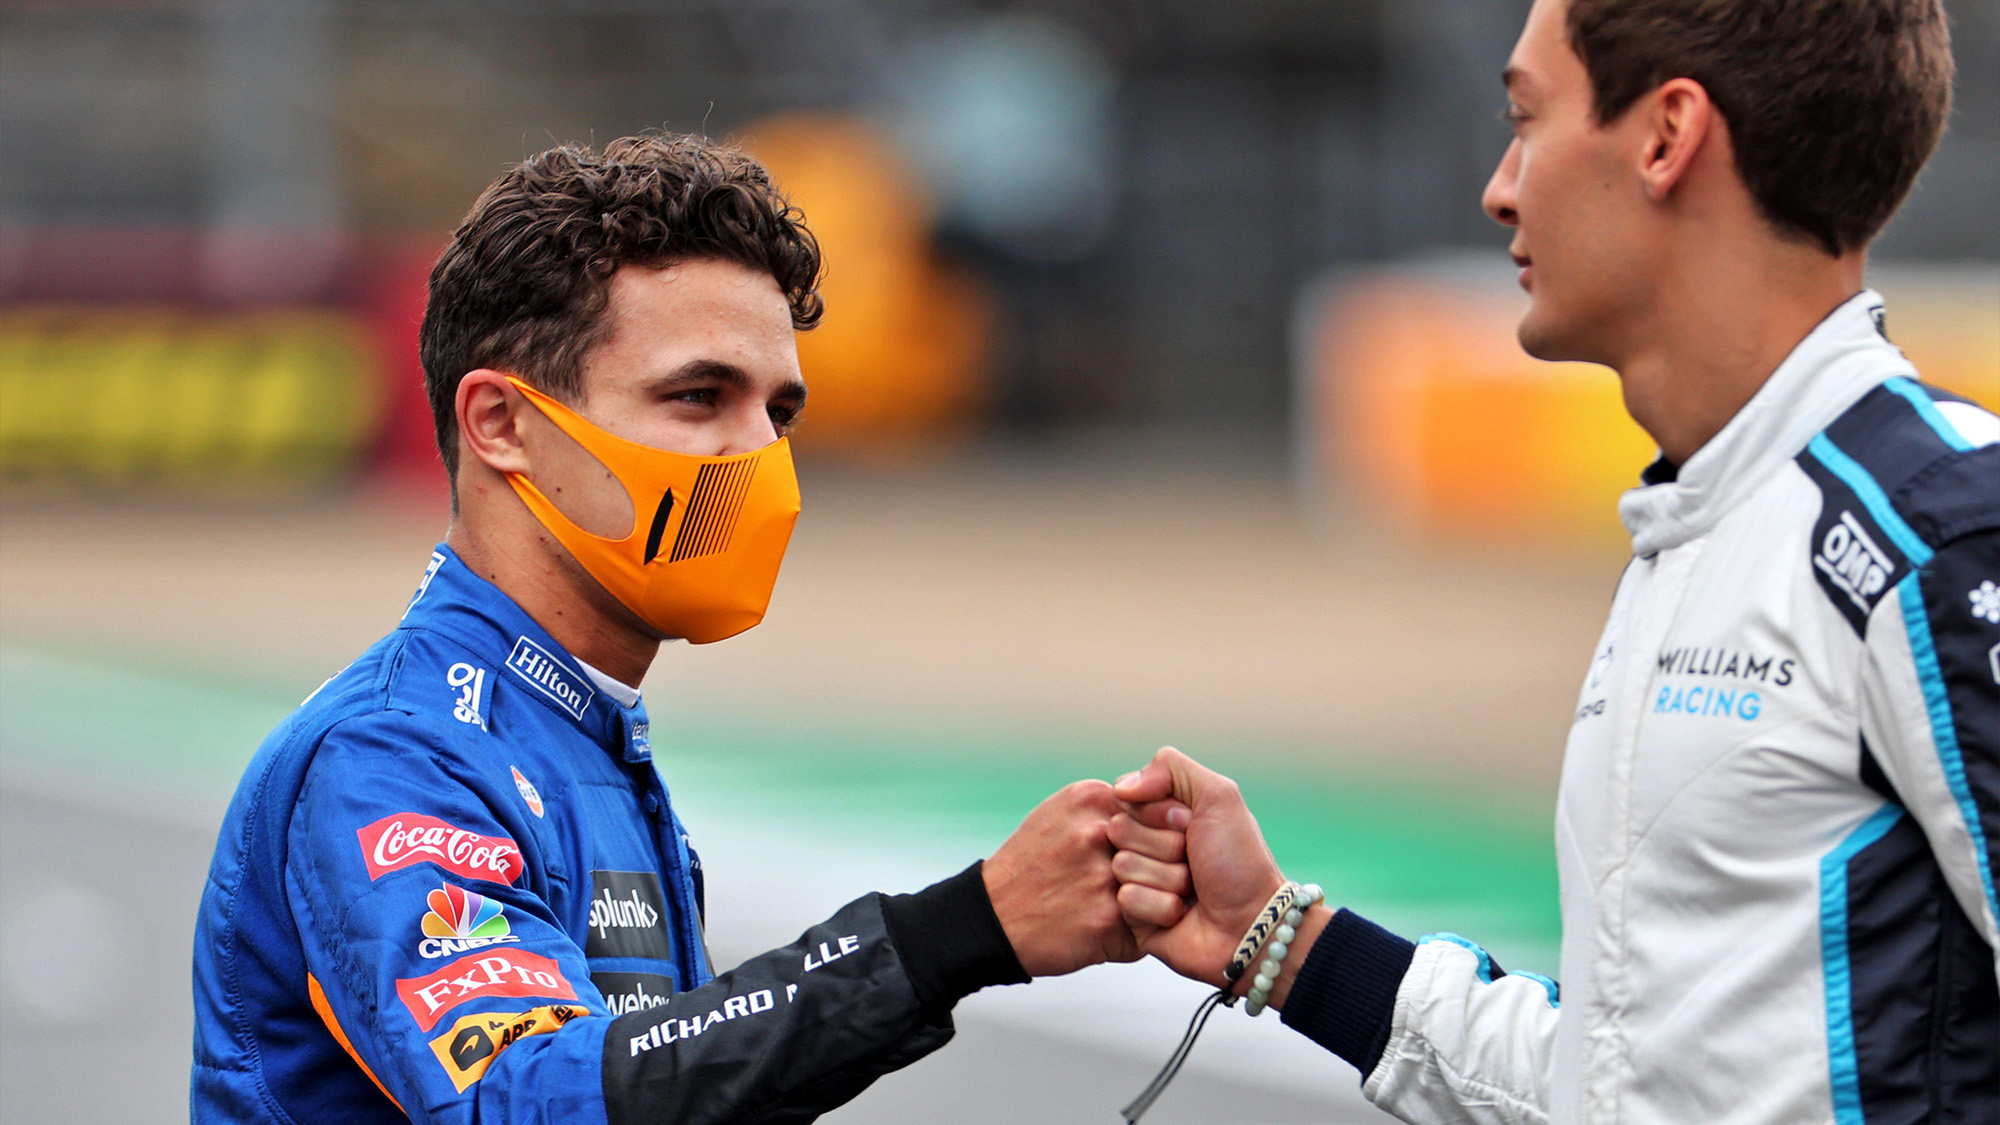 Lando Norris and George Russell bump fists at Silverstone 2021